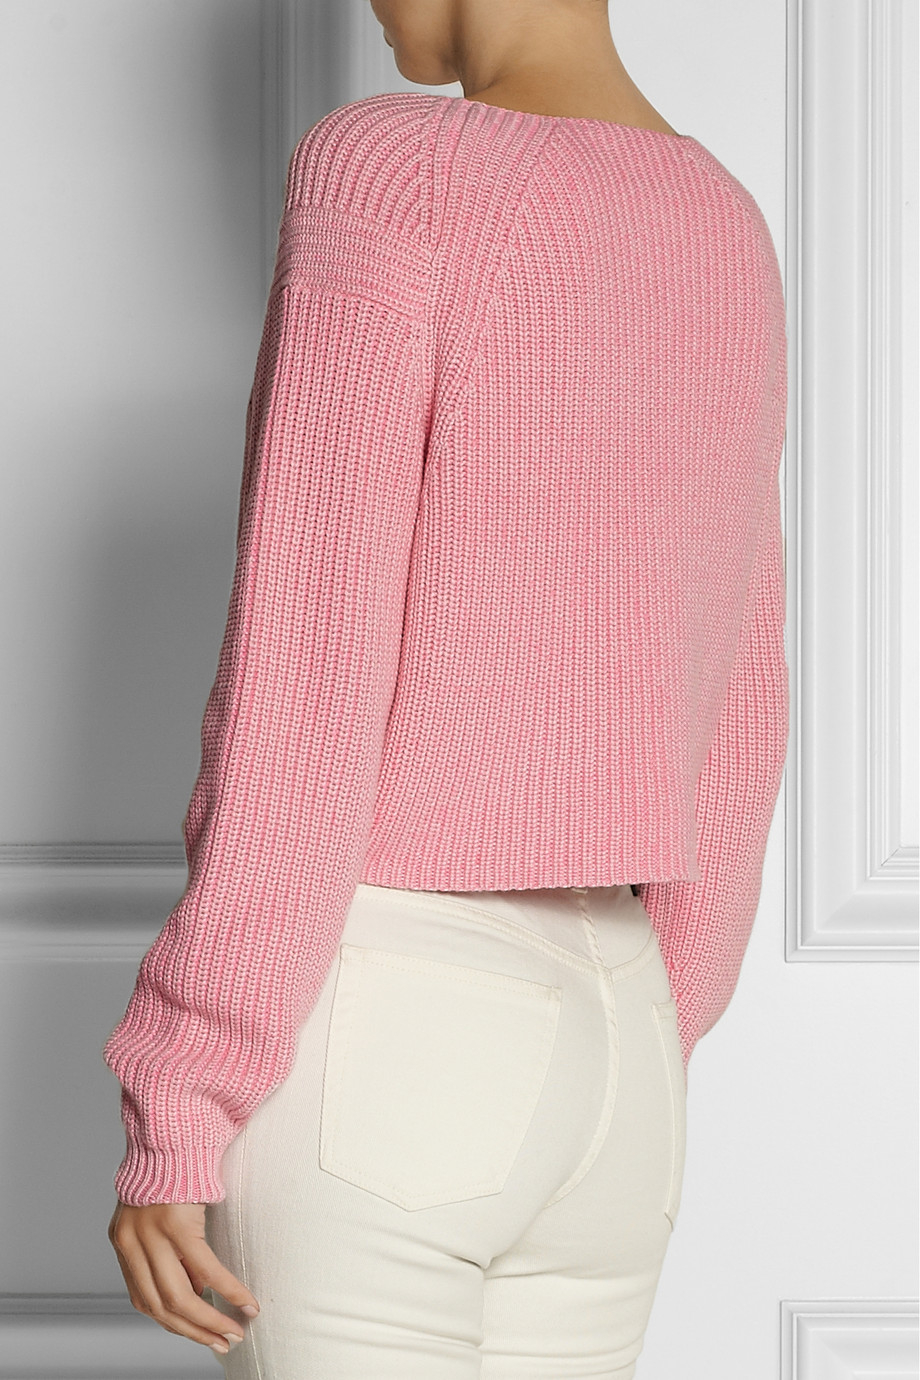 Tibi Ribbed-knit Cotton Sweater in Pink | Lyst